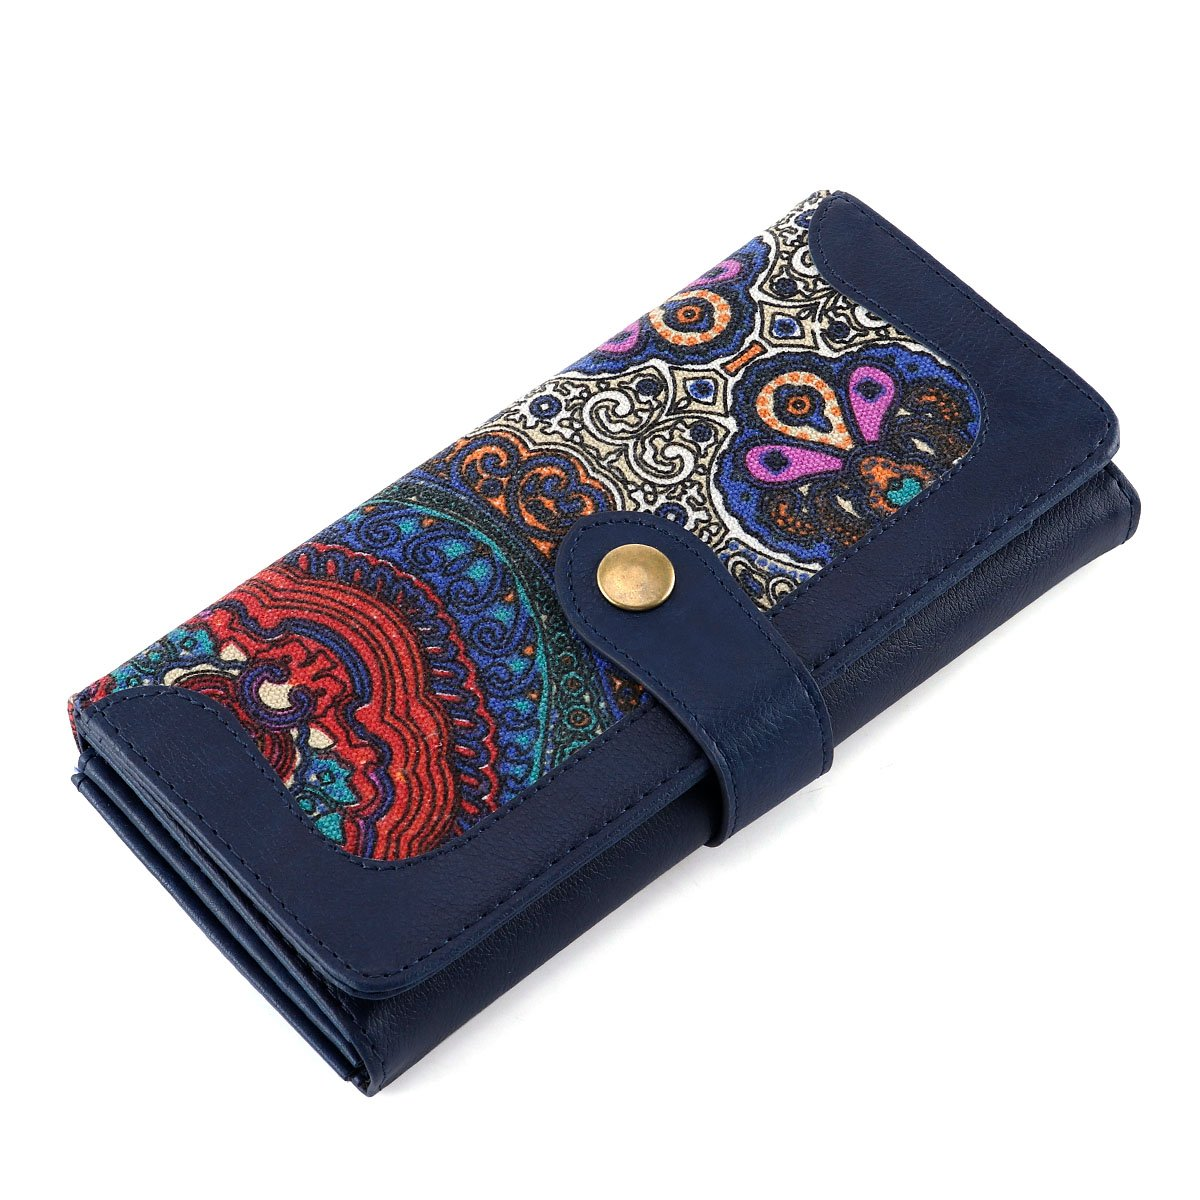 Women Wallet Large Capacity Clutch Wallet Holder Purse with ID Window and Inner Zipper Pocket (Blue)